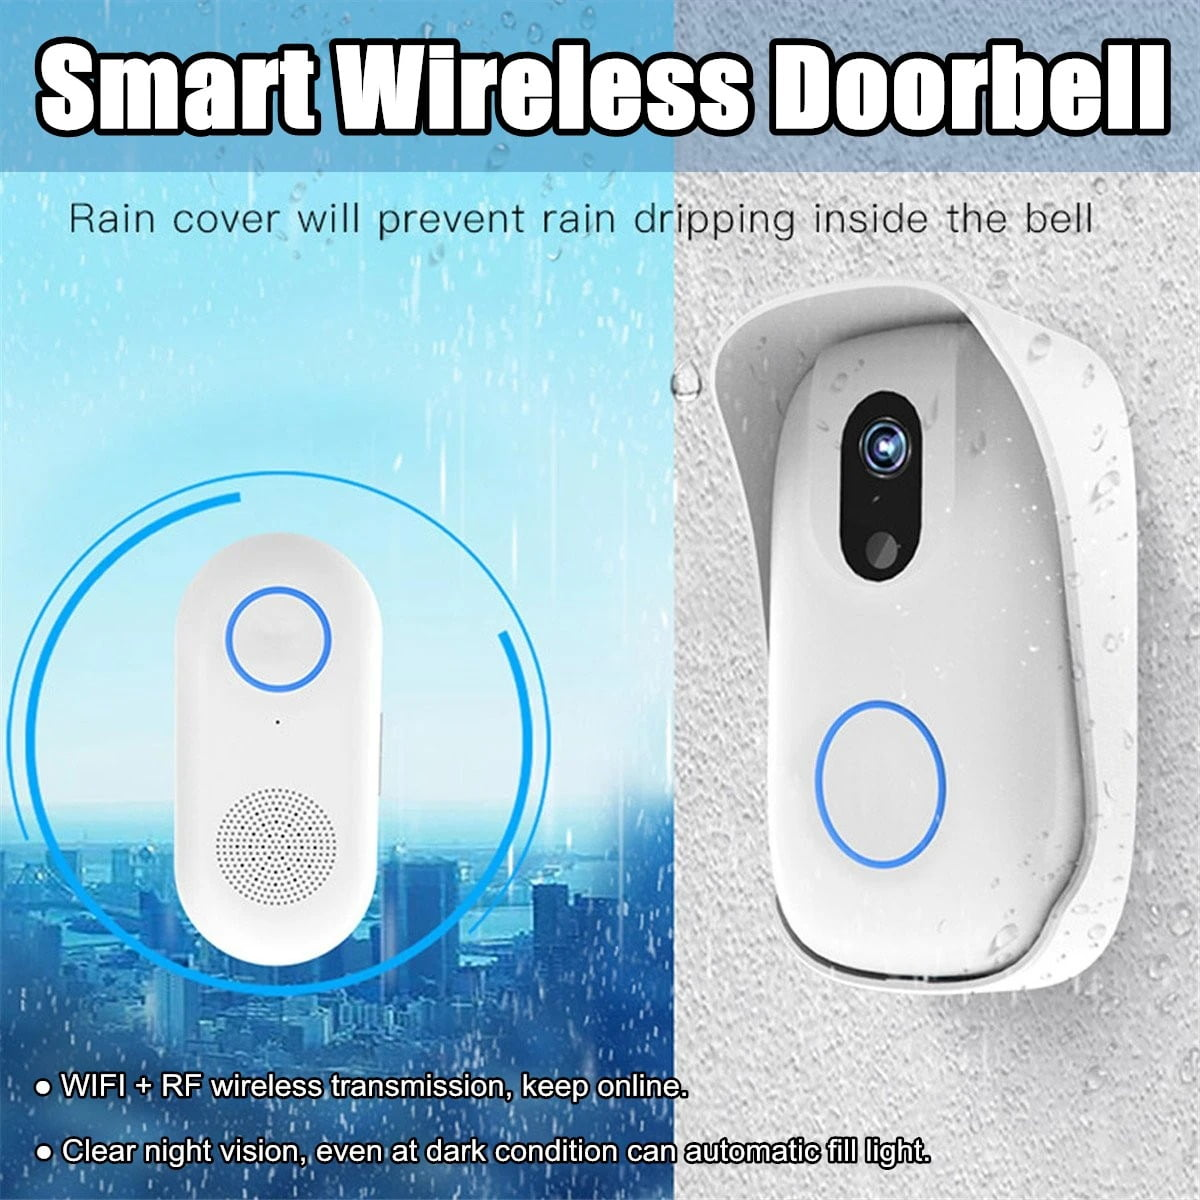 SH02 Smart Wireless Doorbell Lens Video HD Security Camera Night Vision App Control (17)